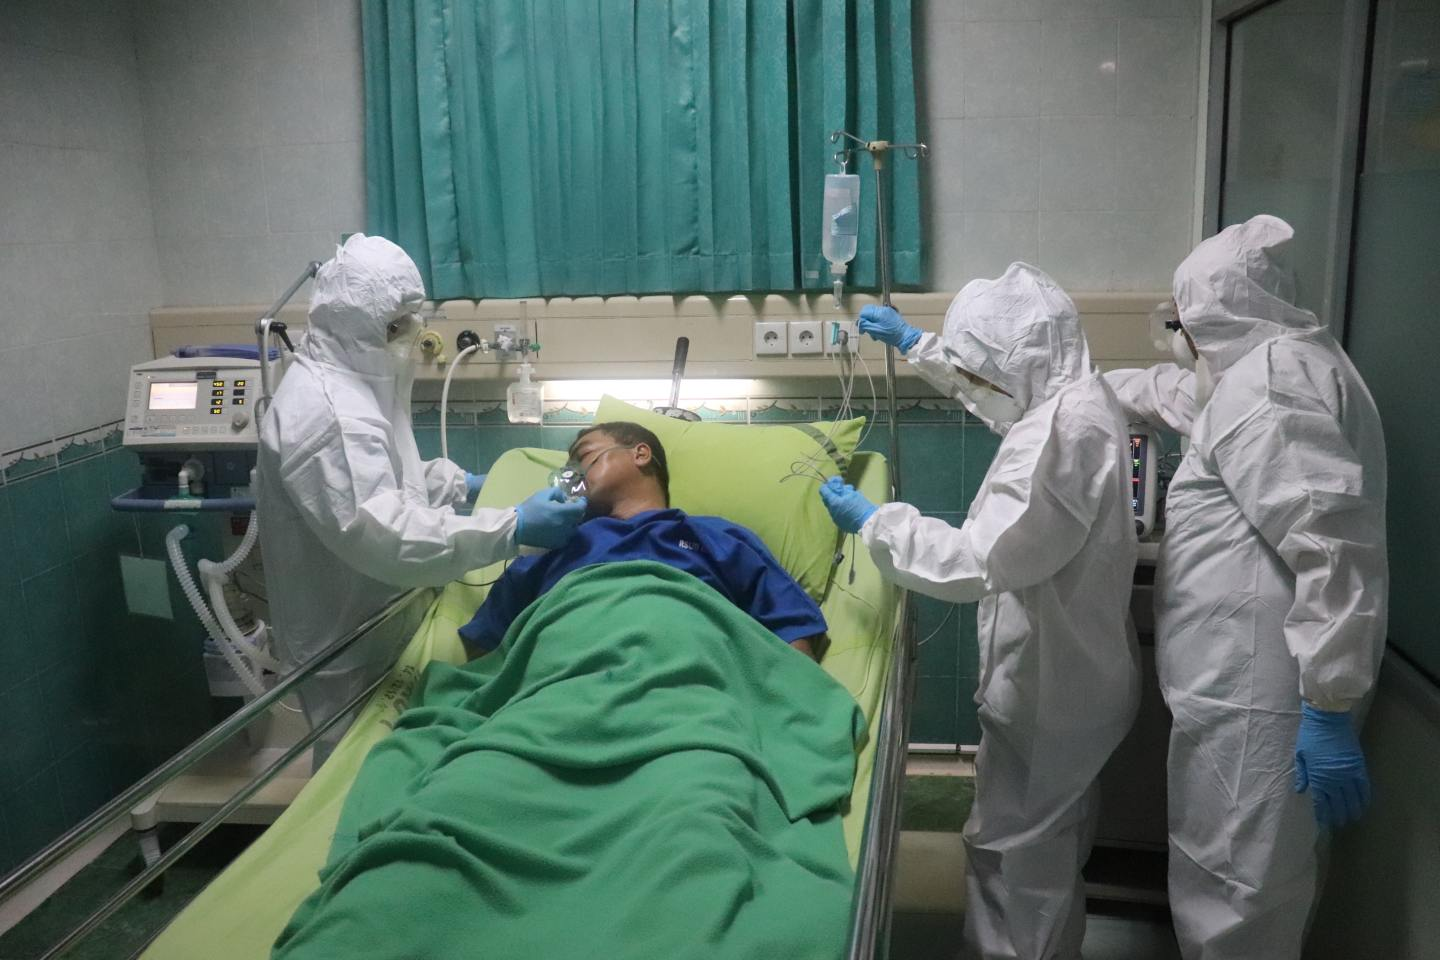 Man lies in green bed surrounded by three people in white protective suits.